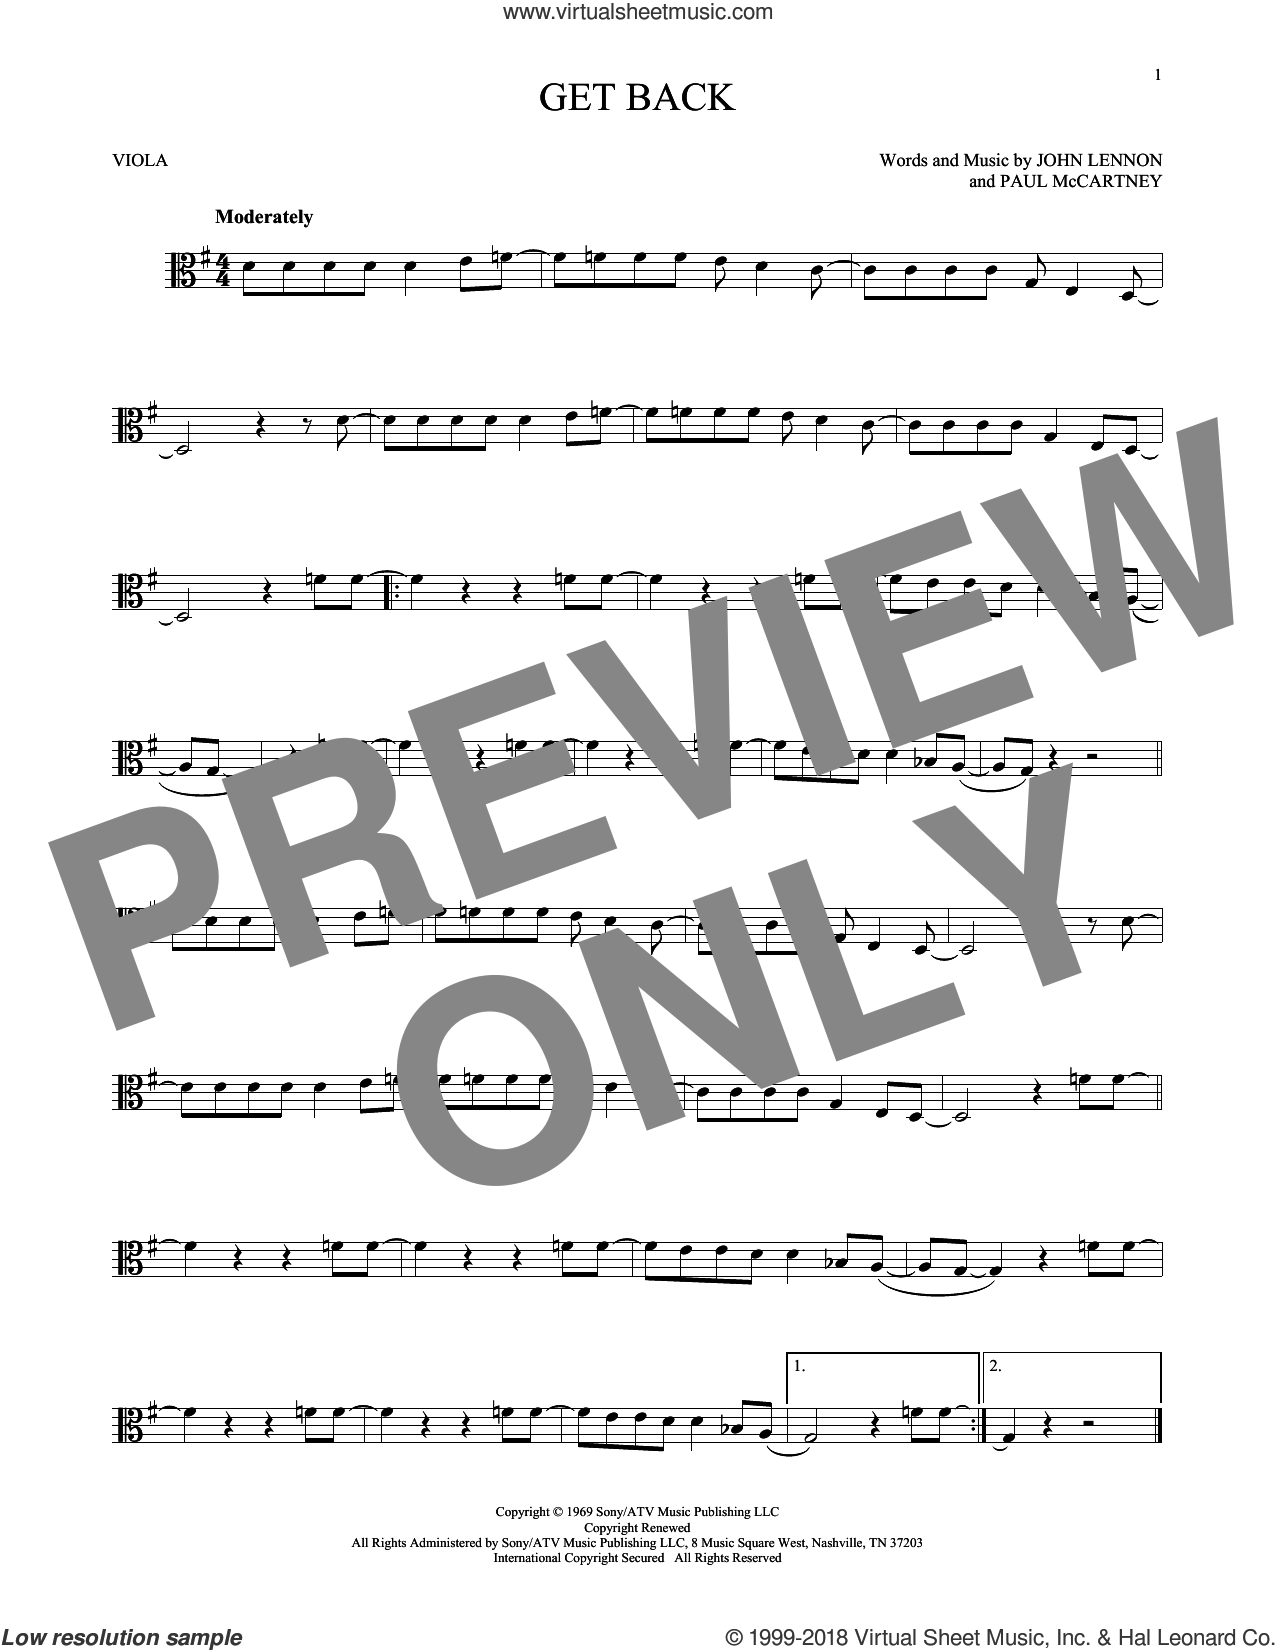 Get Back sheet music for viola solo by Paul McCartney, The Beatles and John Lennon. Score Image Preview.